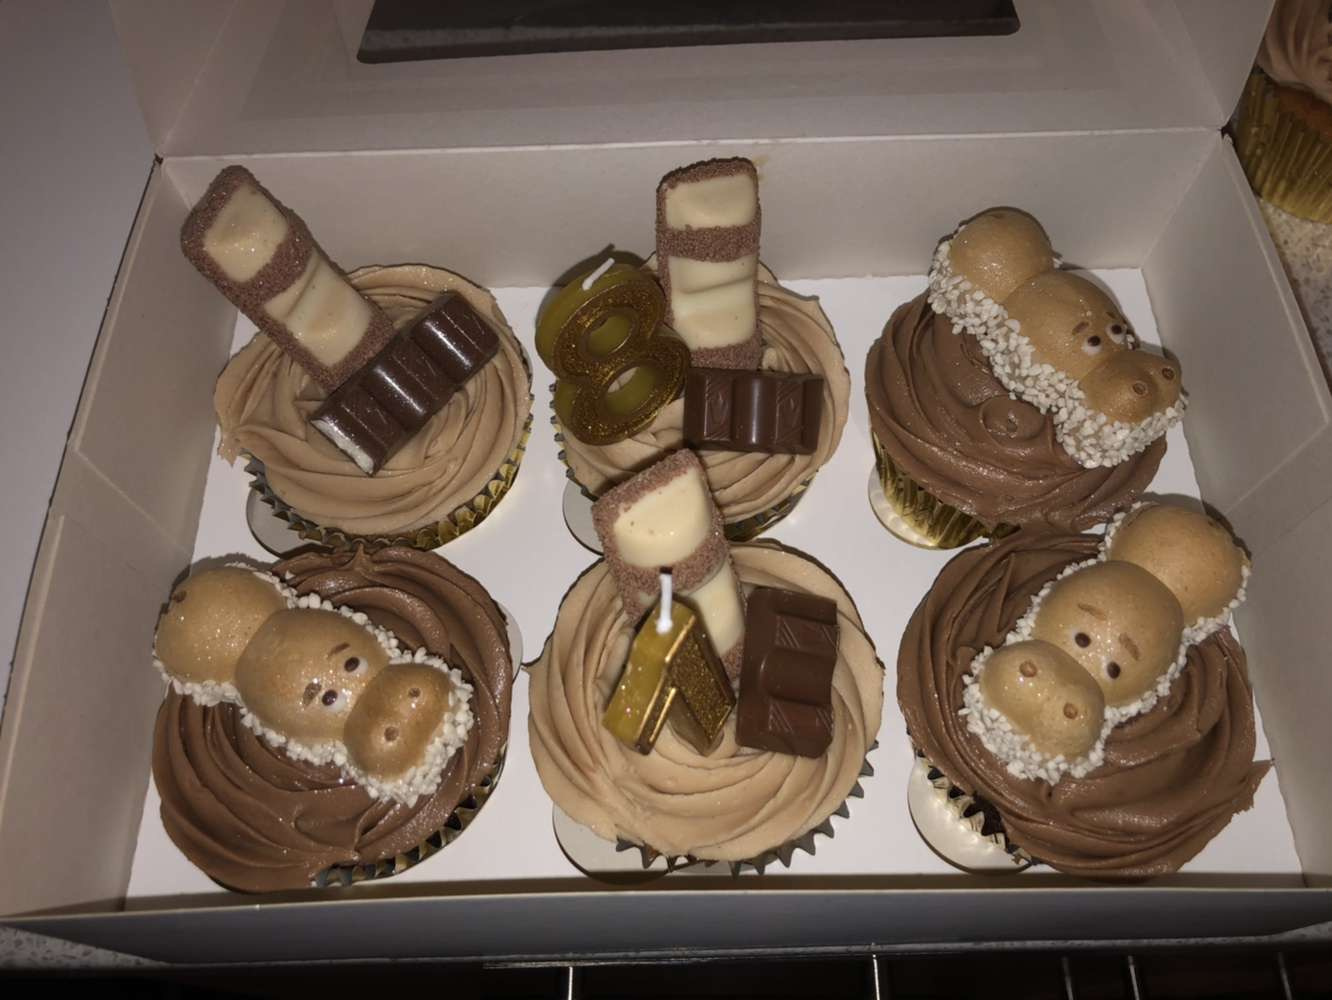 This is a photo taken by Sian Freeman of her Kinder Cupcakes from her family-friendly recipe.